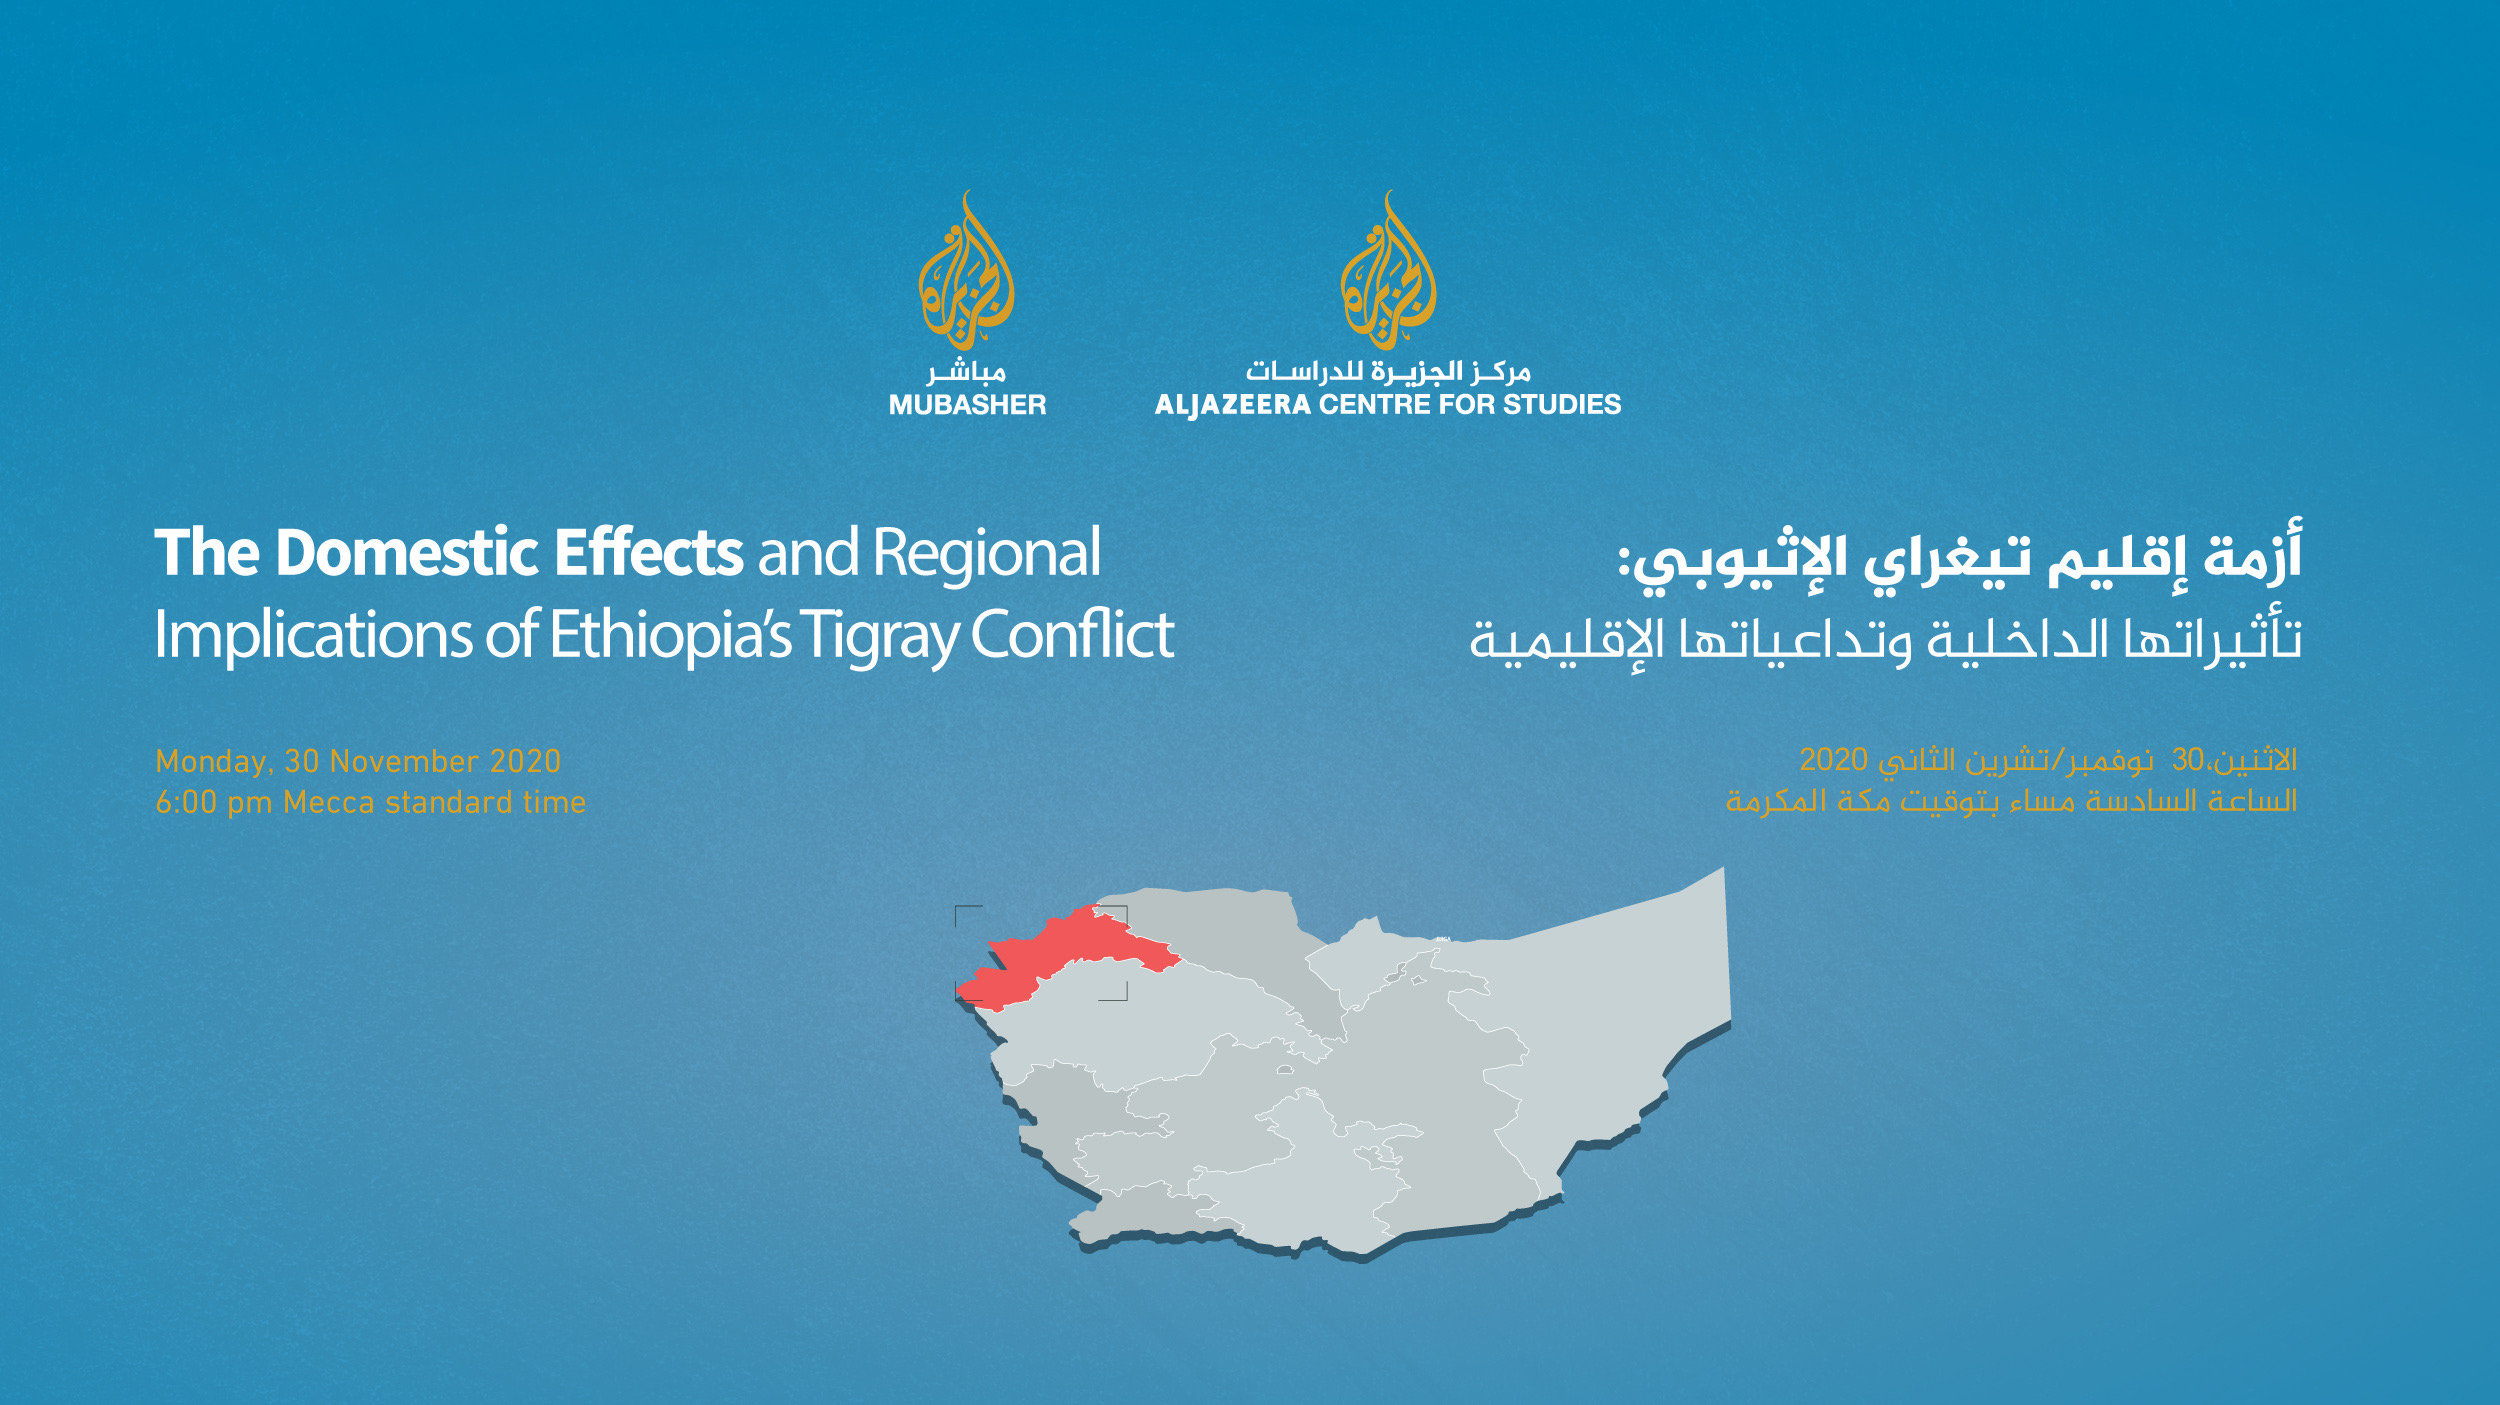 studies.aljazeera.net: AJCS webinar to shed light on Ethiopia's Tigray Conflict and explore domestic and regional implications